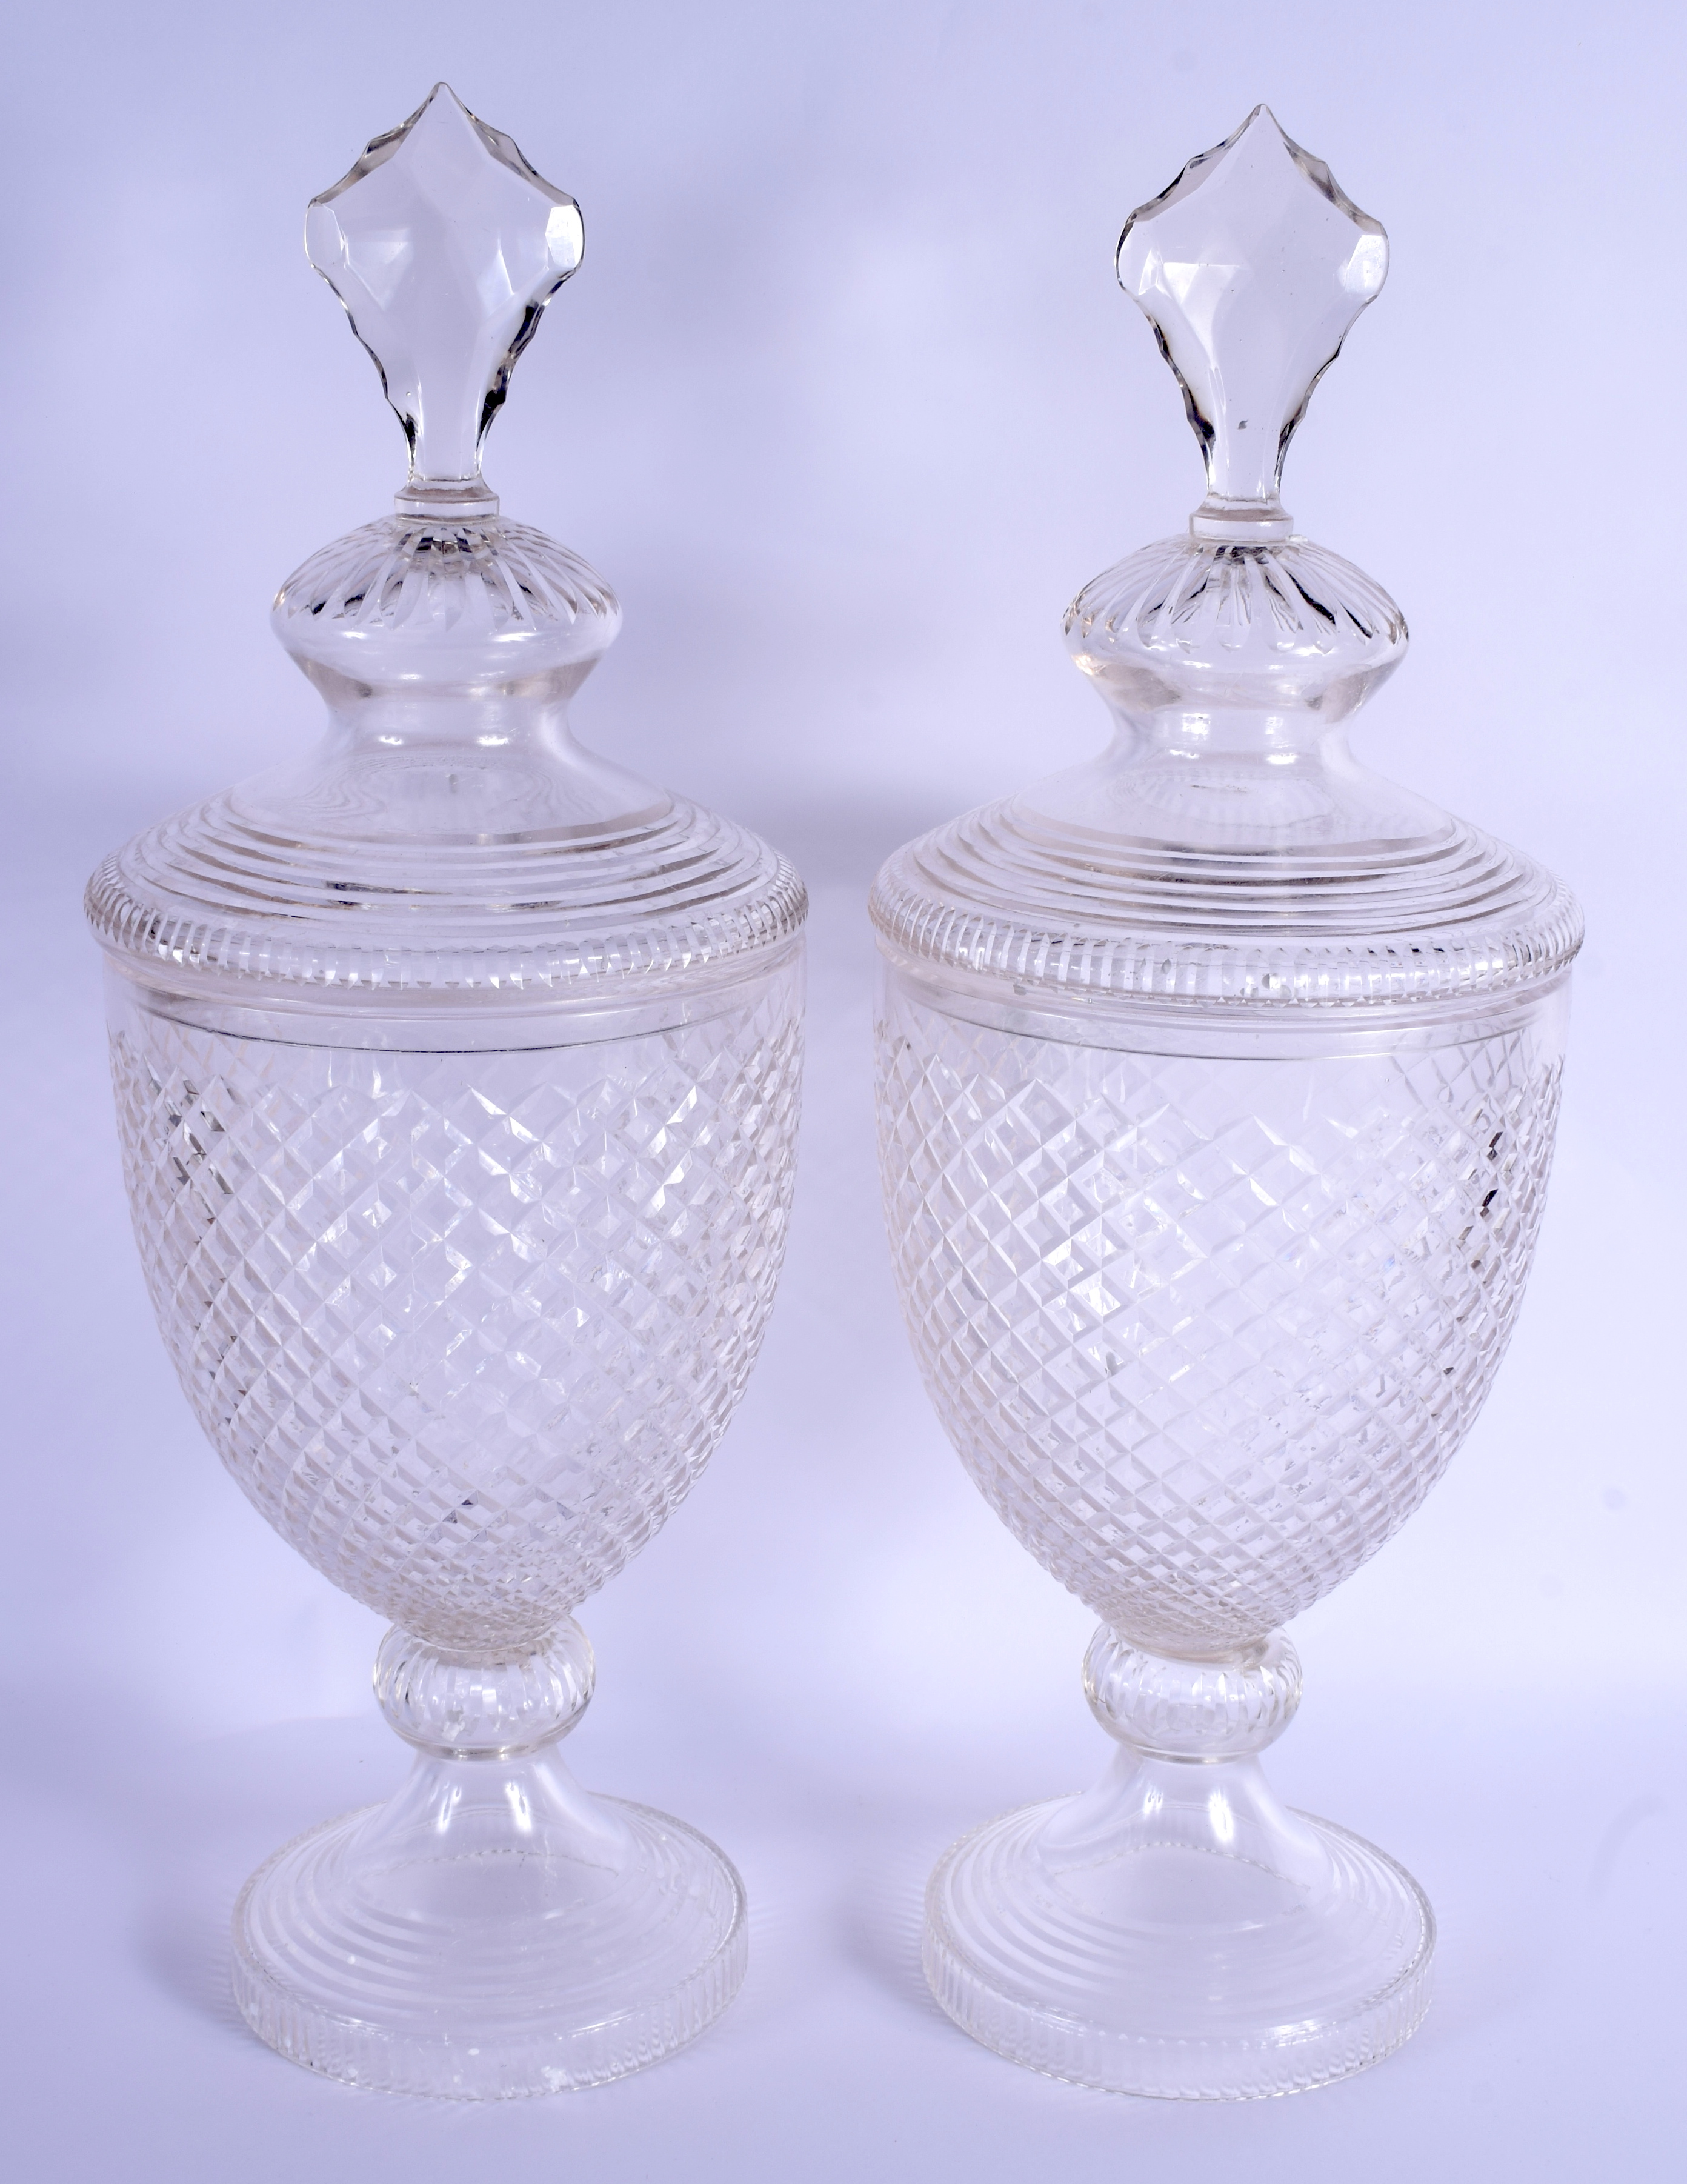 A PAIR OF CUT GLASS STORM LAMPS AND COVERS. 53 cm high. - Image 2 of 2